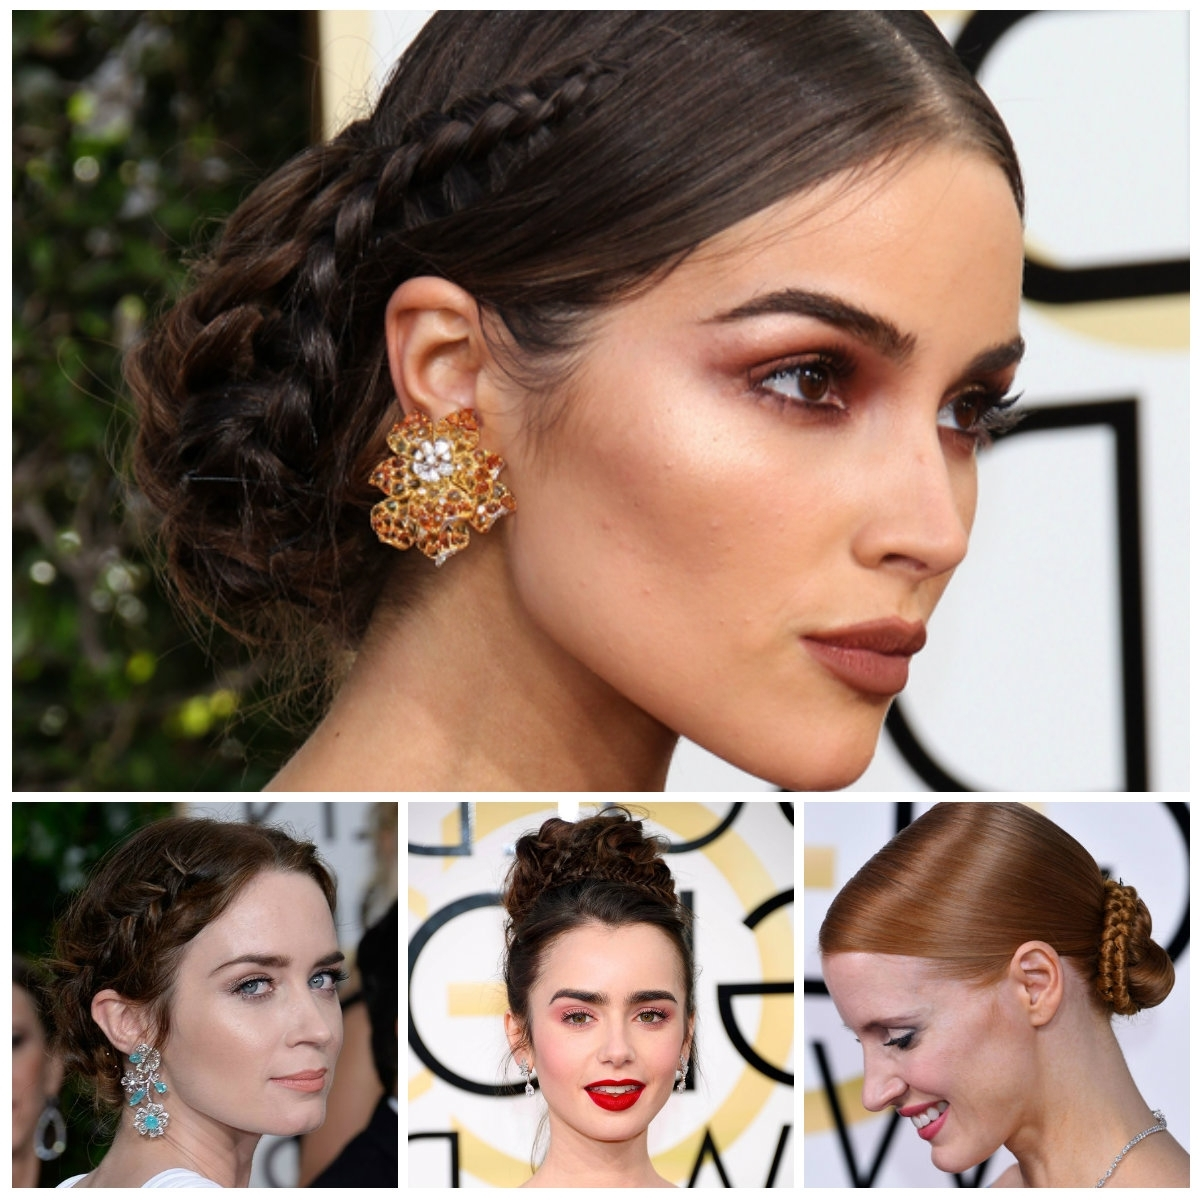 Best And Newest Celebrity Braided Hairstyles Within 2017 Celebrity Braided Updo Hairstyles For Prom – New Hairstyles (View 5 of 15)